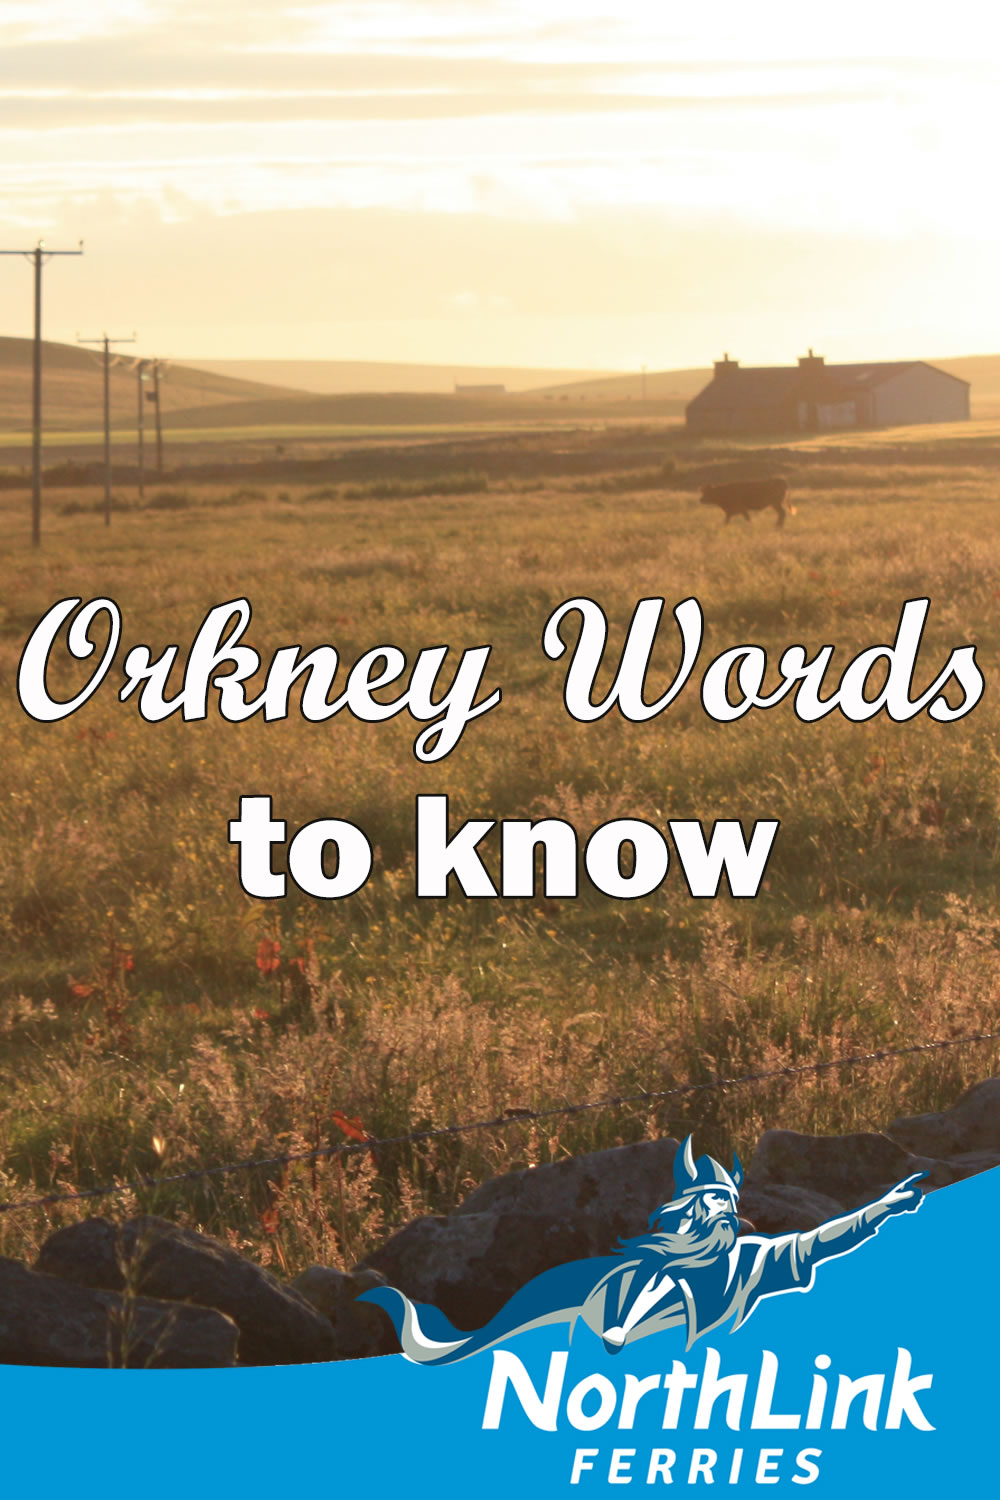 Orkney words to know